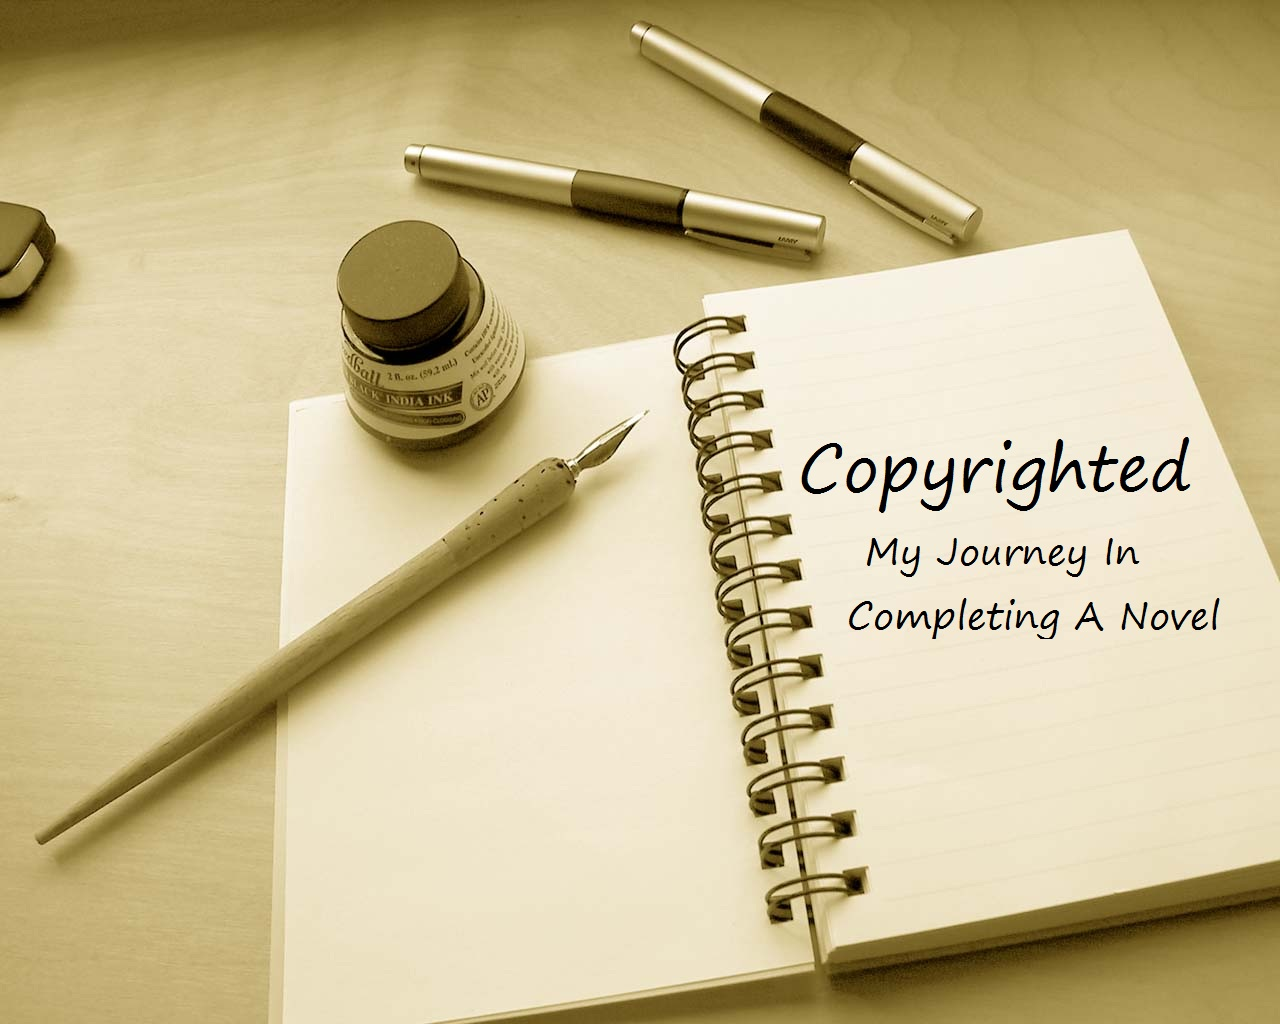 Copyrighted: My Journey In Completing A Novel